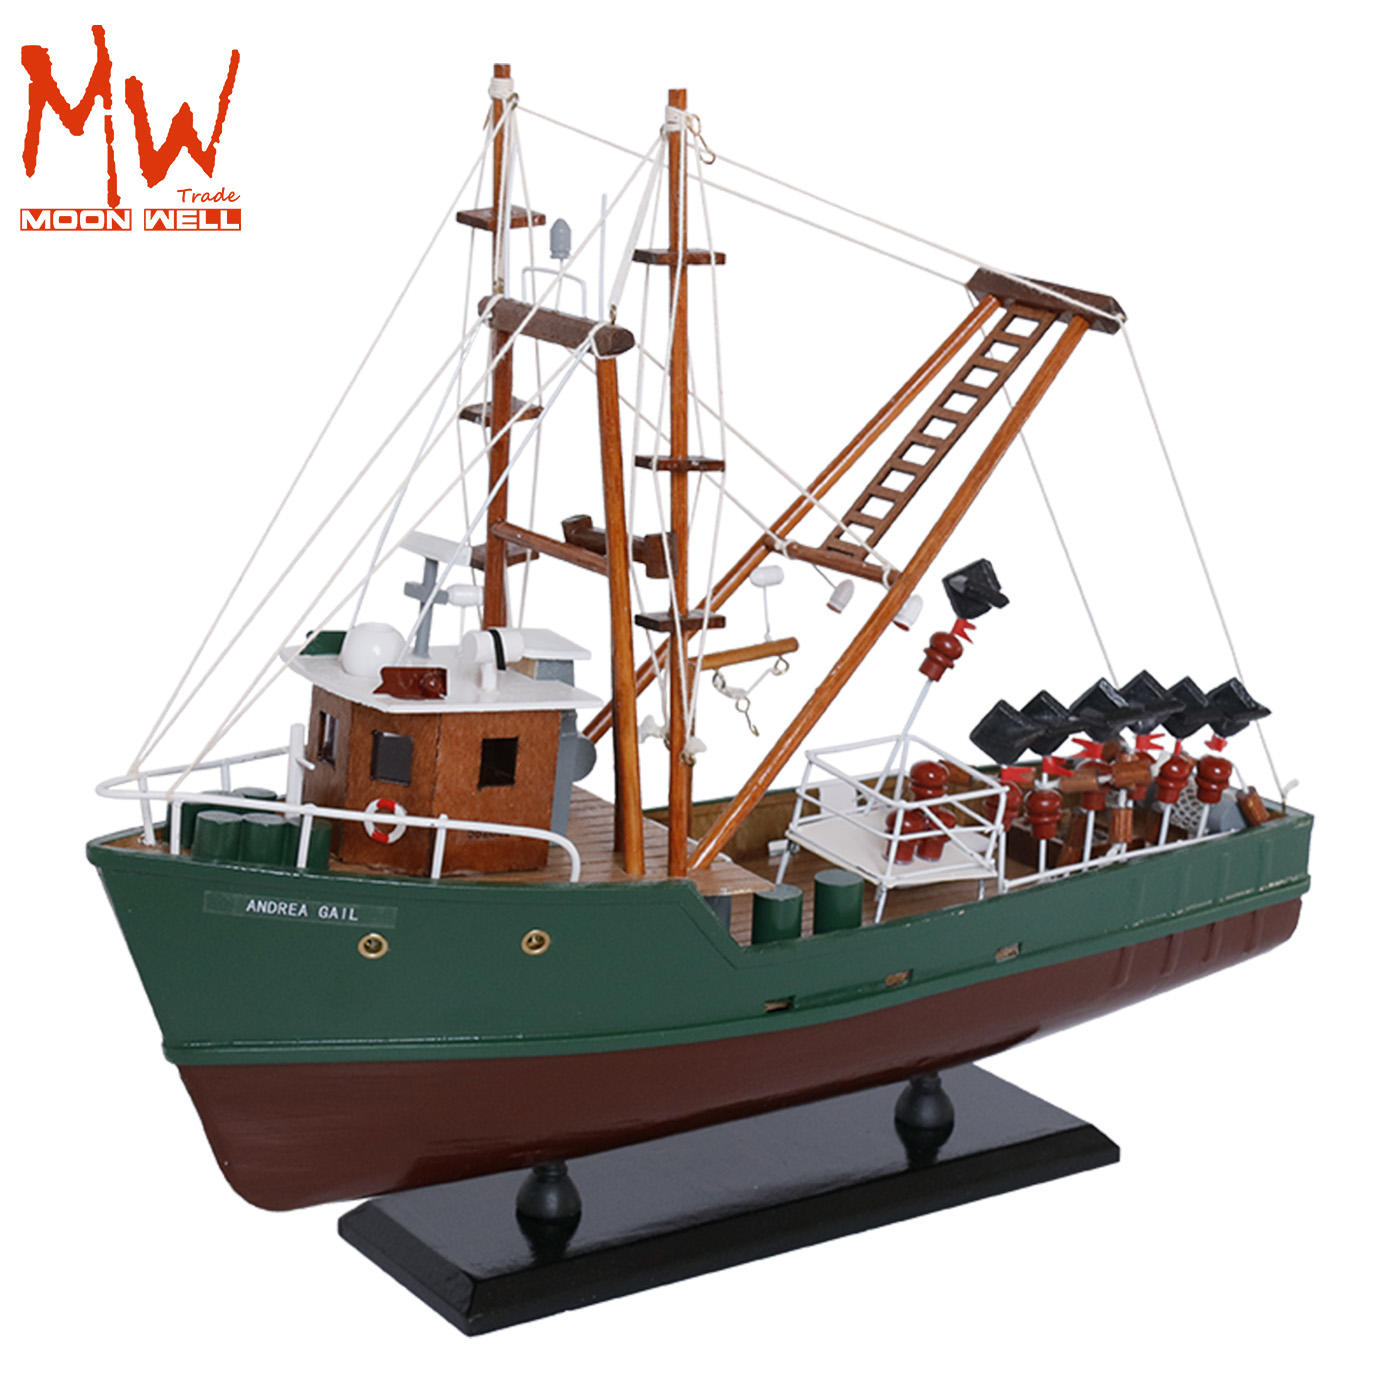 Authentic models wooden shimp crab fishing boat Andrea Gail movie the perfect storm handcrafted model ship trawler model 16''